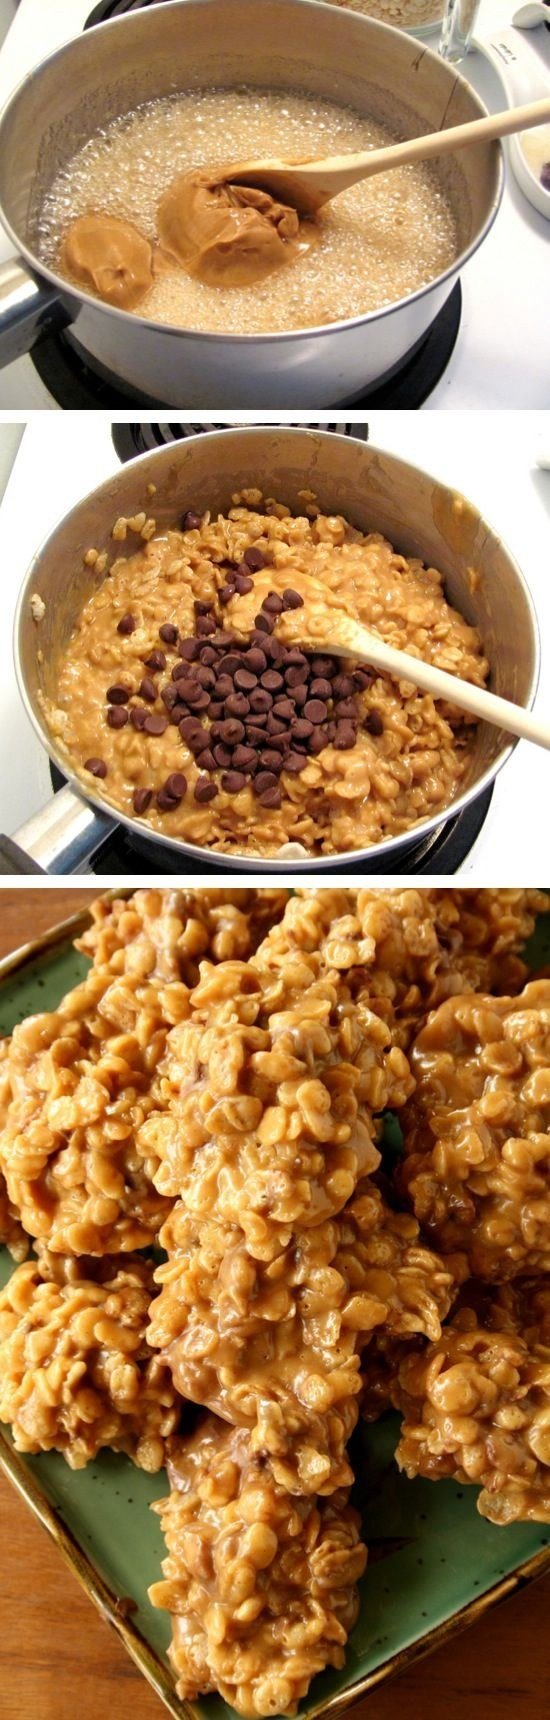 Easy cereal dessert recipes